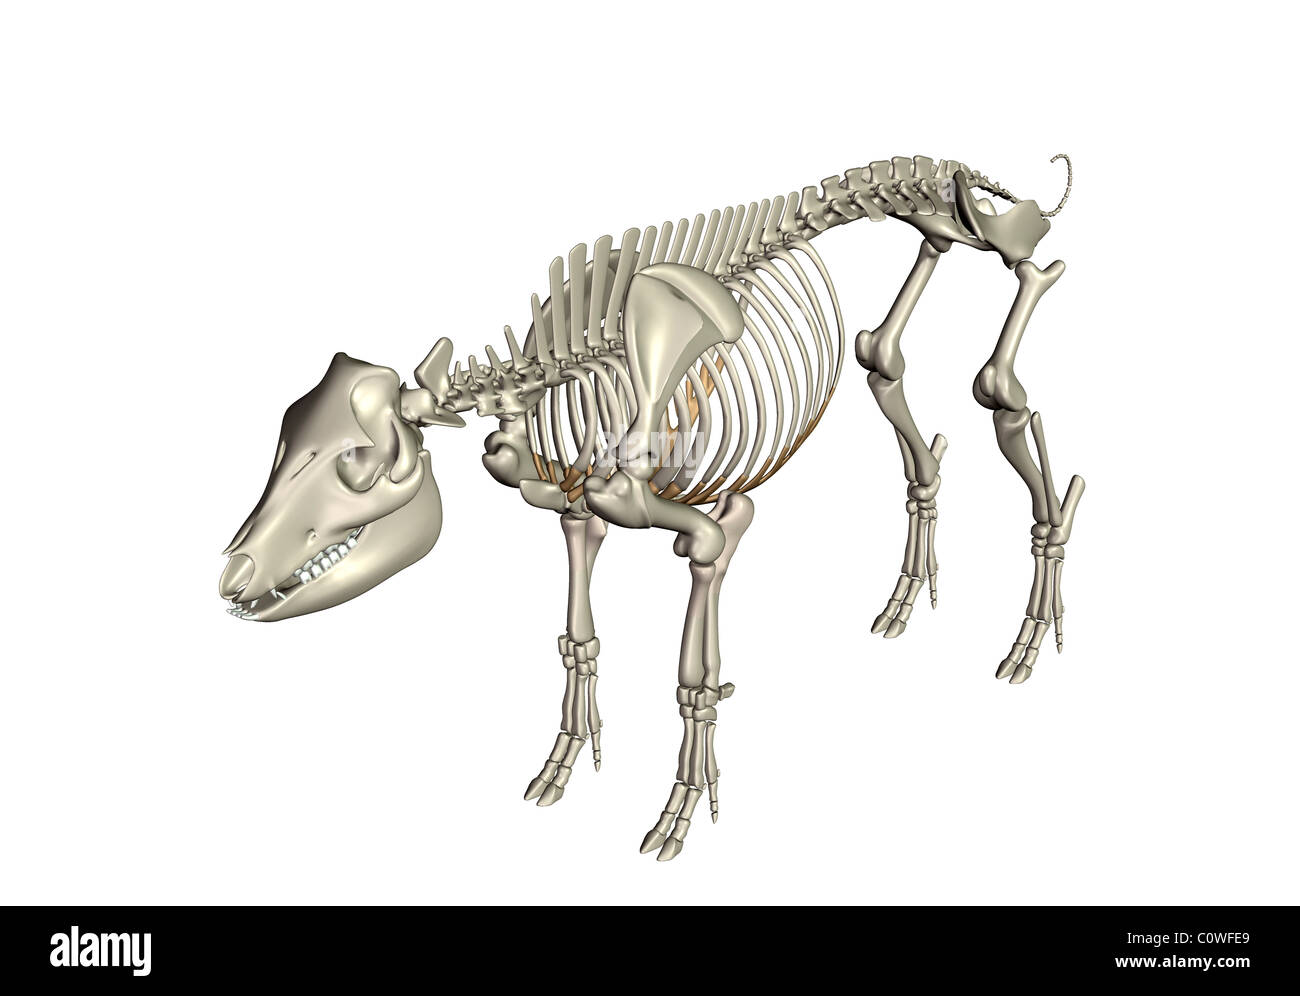 pig anatomy skeleton bones Stock Photo: 34981697 - Alamy